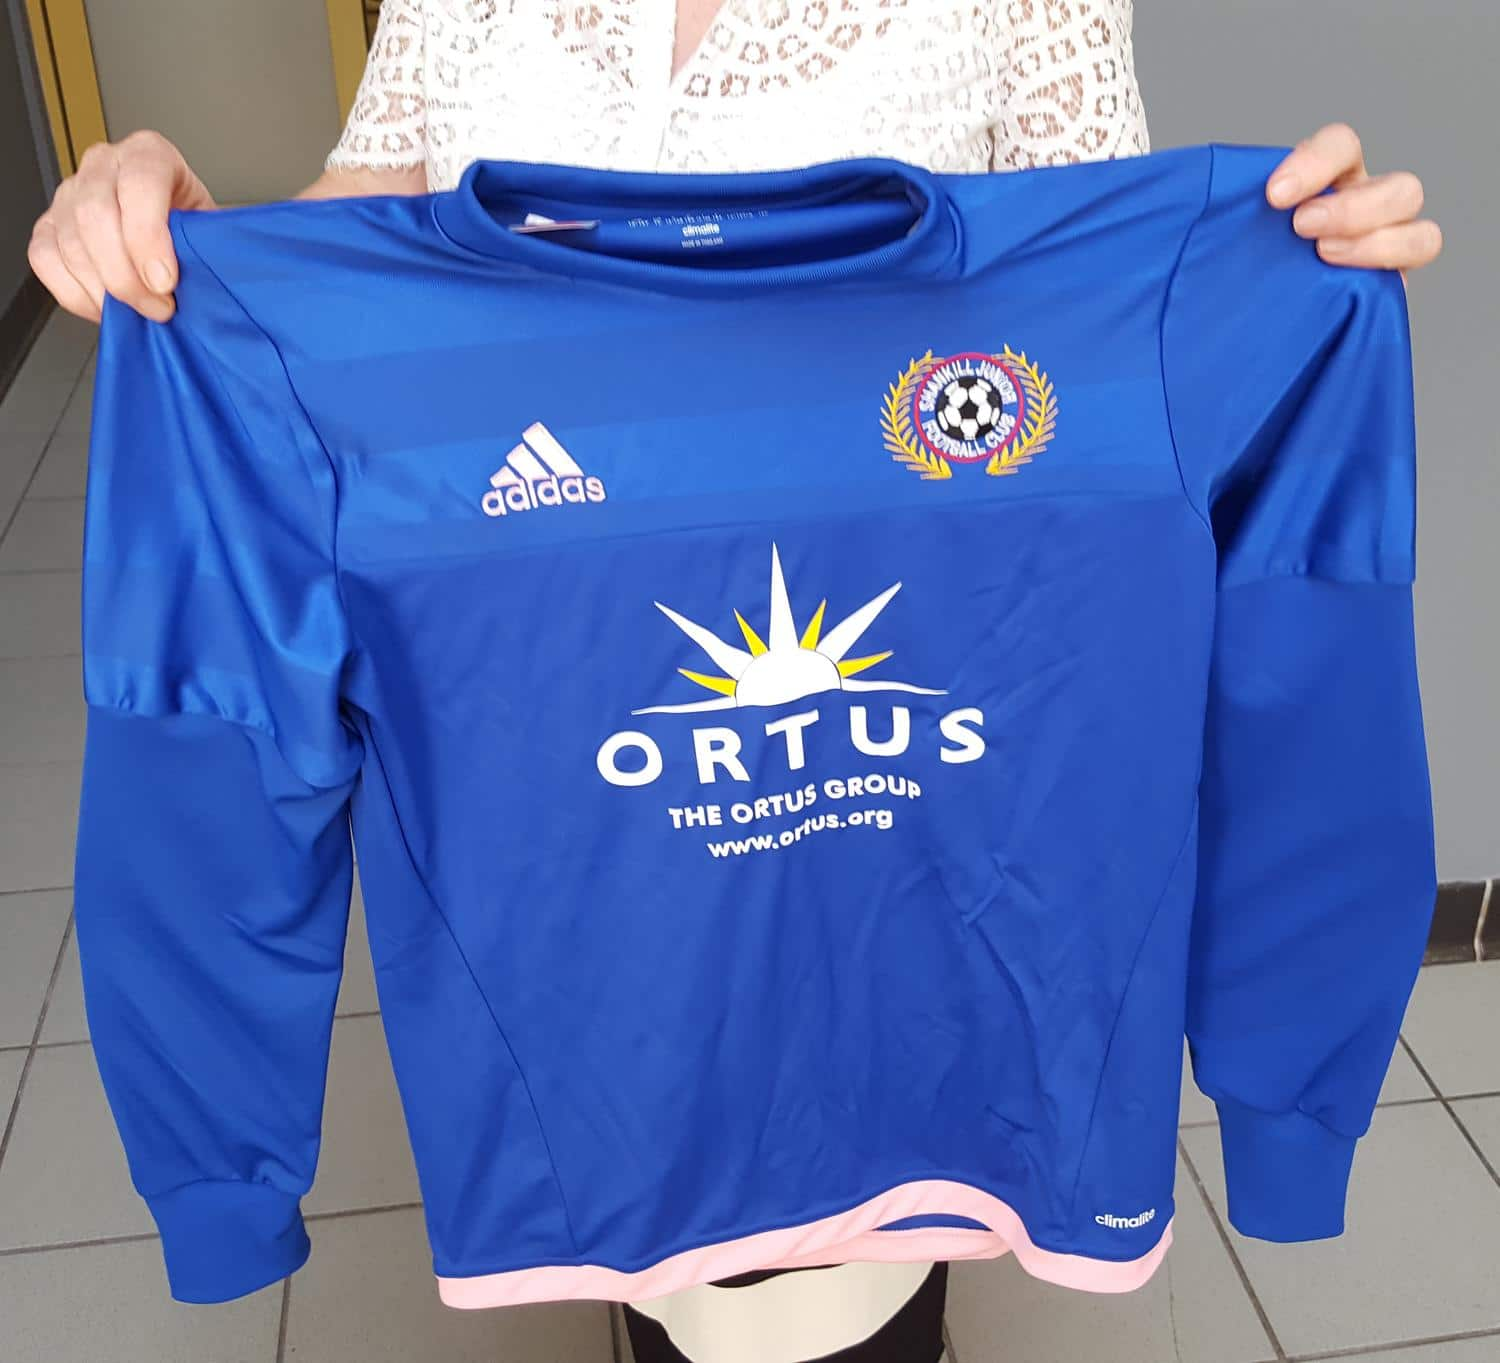 Shankill Juniors Shirt Funded by Ortus